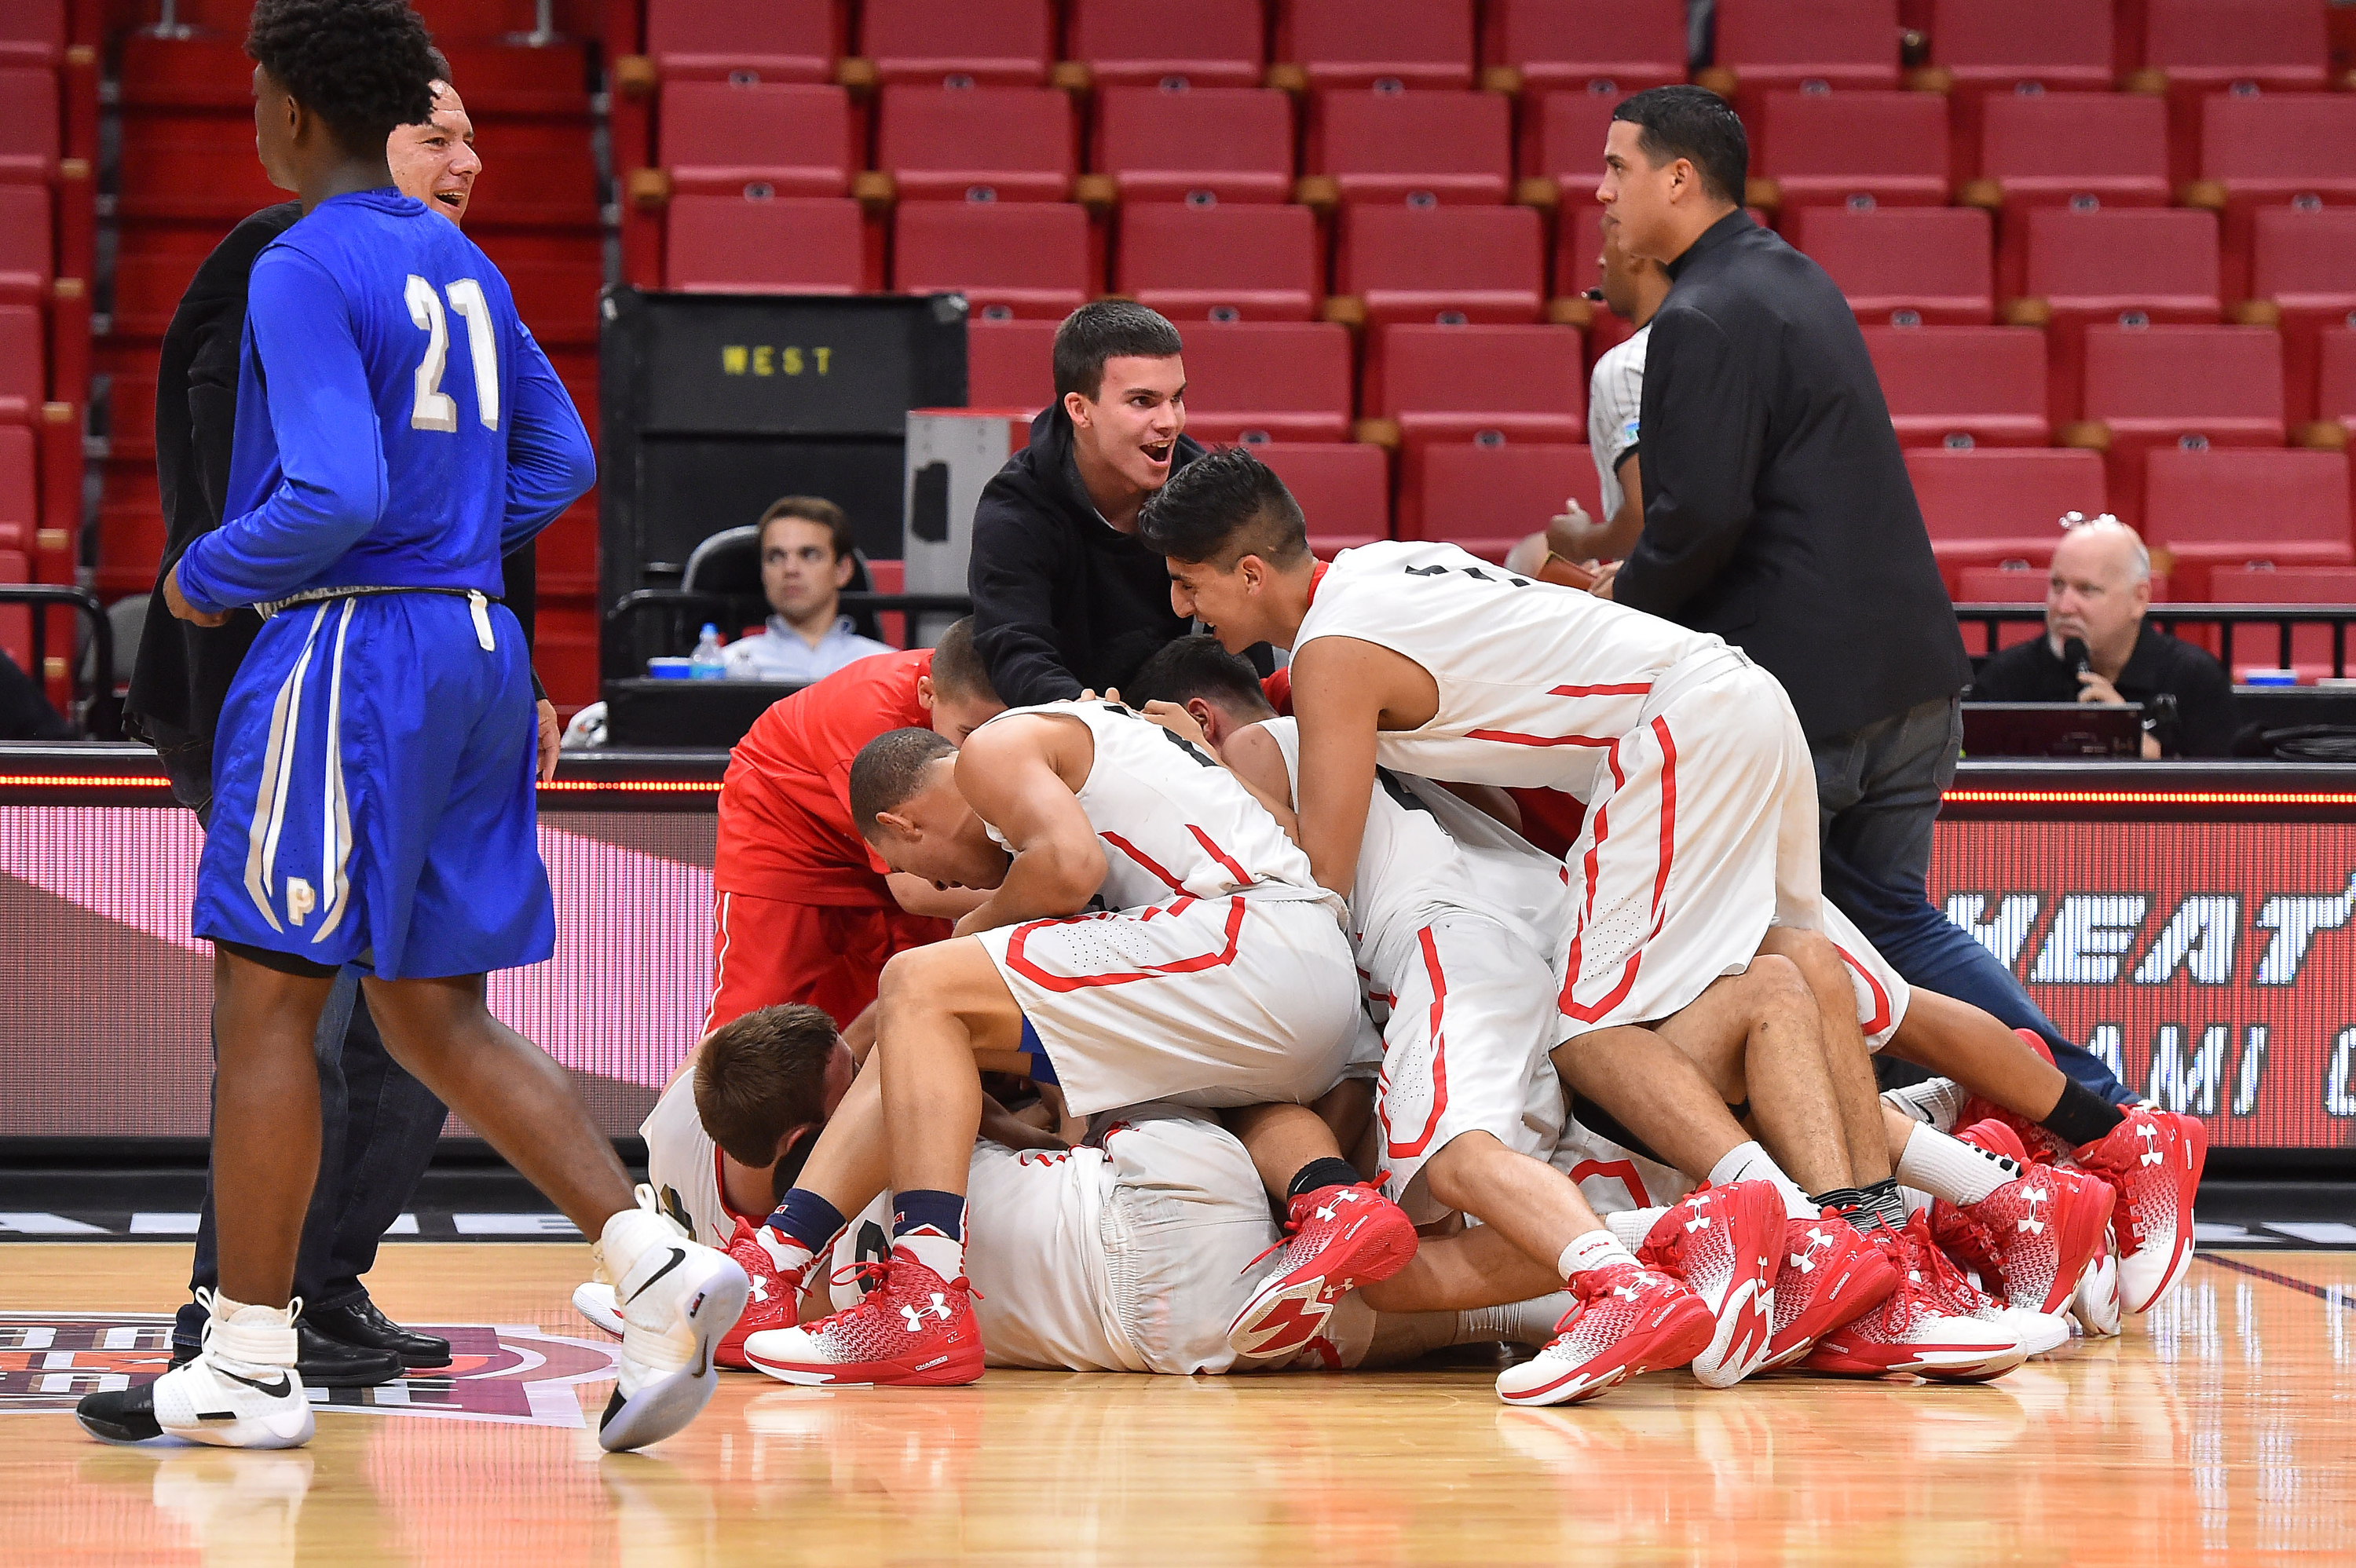 12/8/16 8:30:46 PM -- Miami, FL, U.S.A -- Miami Christian teammates celebrate after defeating Dillard 69-67 during the second half of the HoopHall Miami Invitational. -- Photo by Jasen Vinlove-USA TODAY Sports Images, Gannett ORG XMIT: US 135835 hoophall 12/8/2016 [Via MerlinFTP Drop]